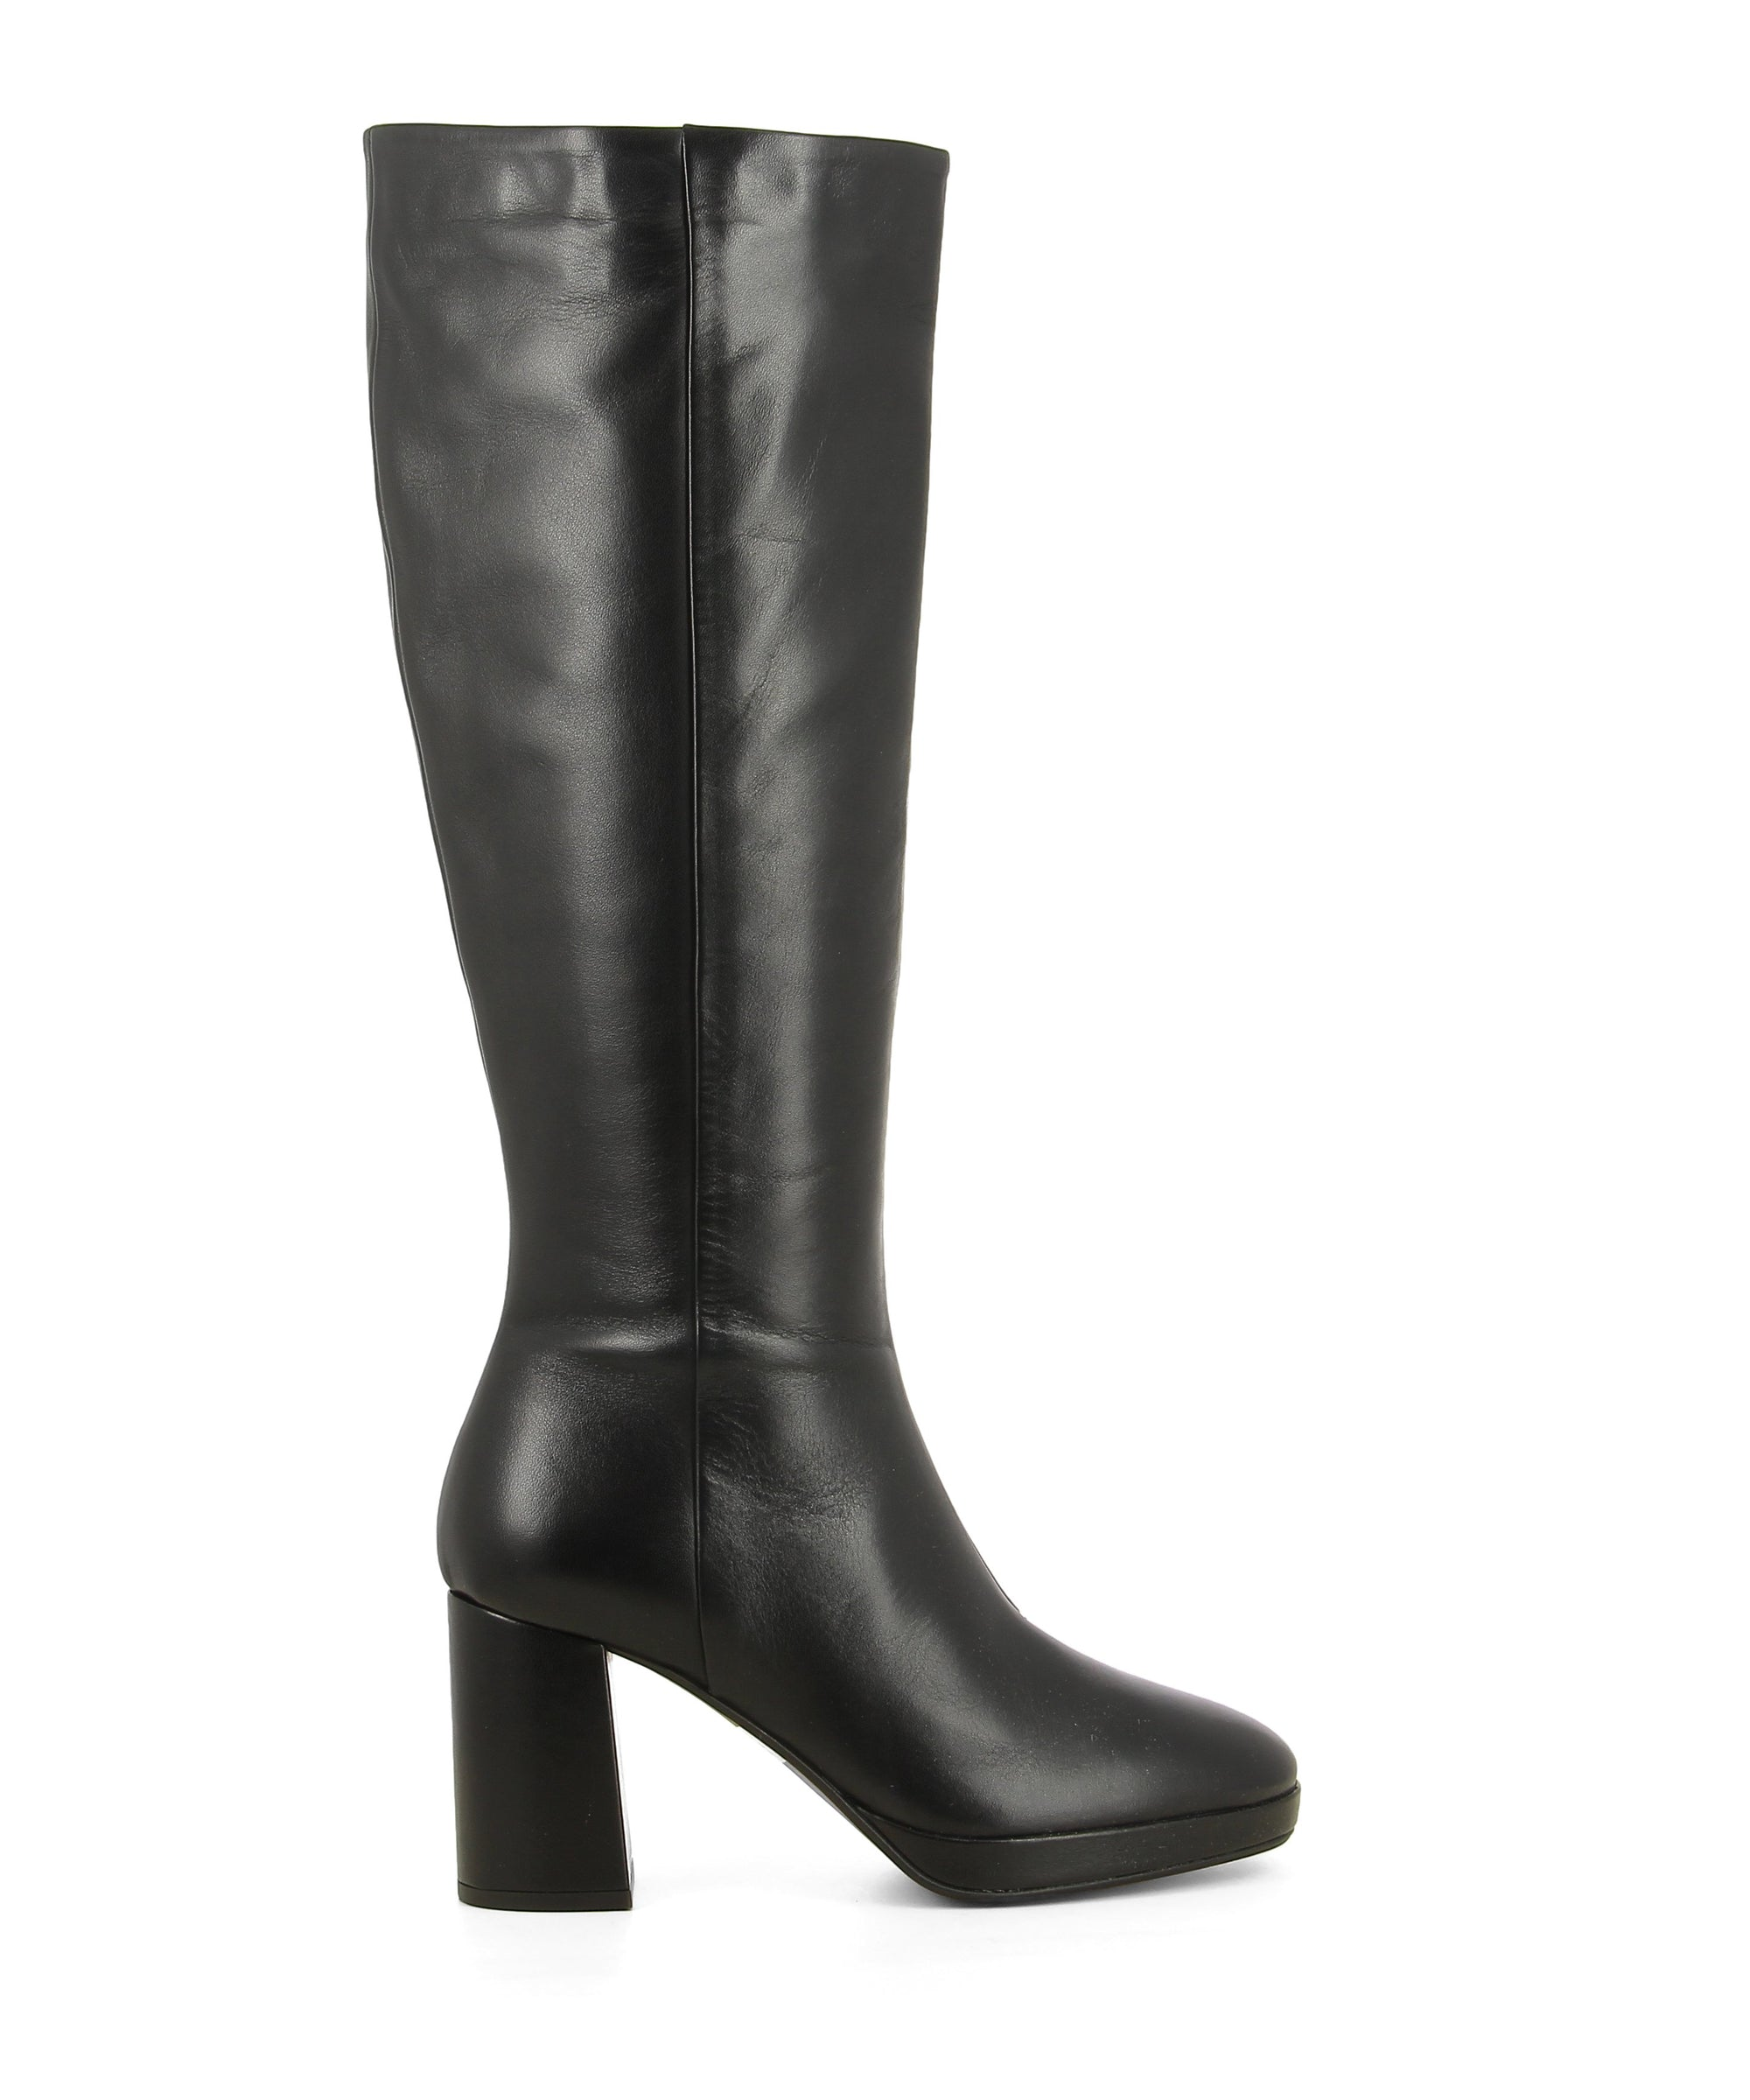 A black leather knee high platform boot featuring a zipper fastening, a high block heel and a round toe. Made by Christian Di Riccio. This style runs true to size.